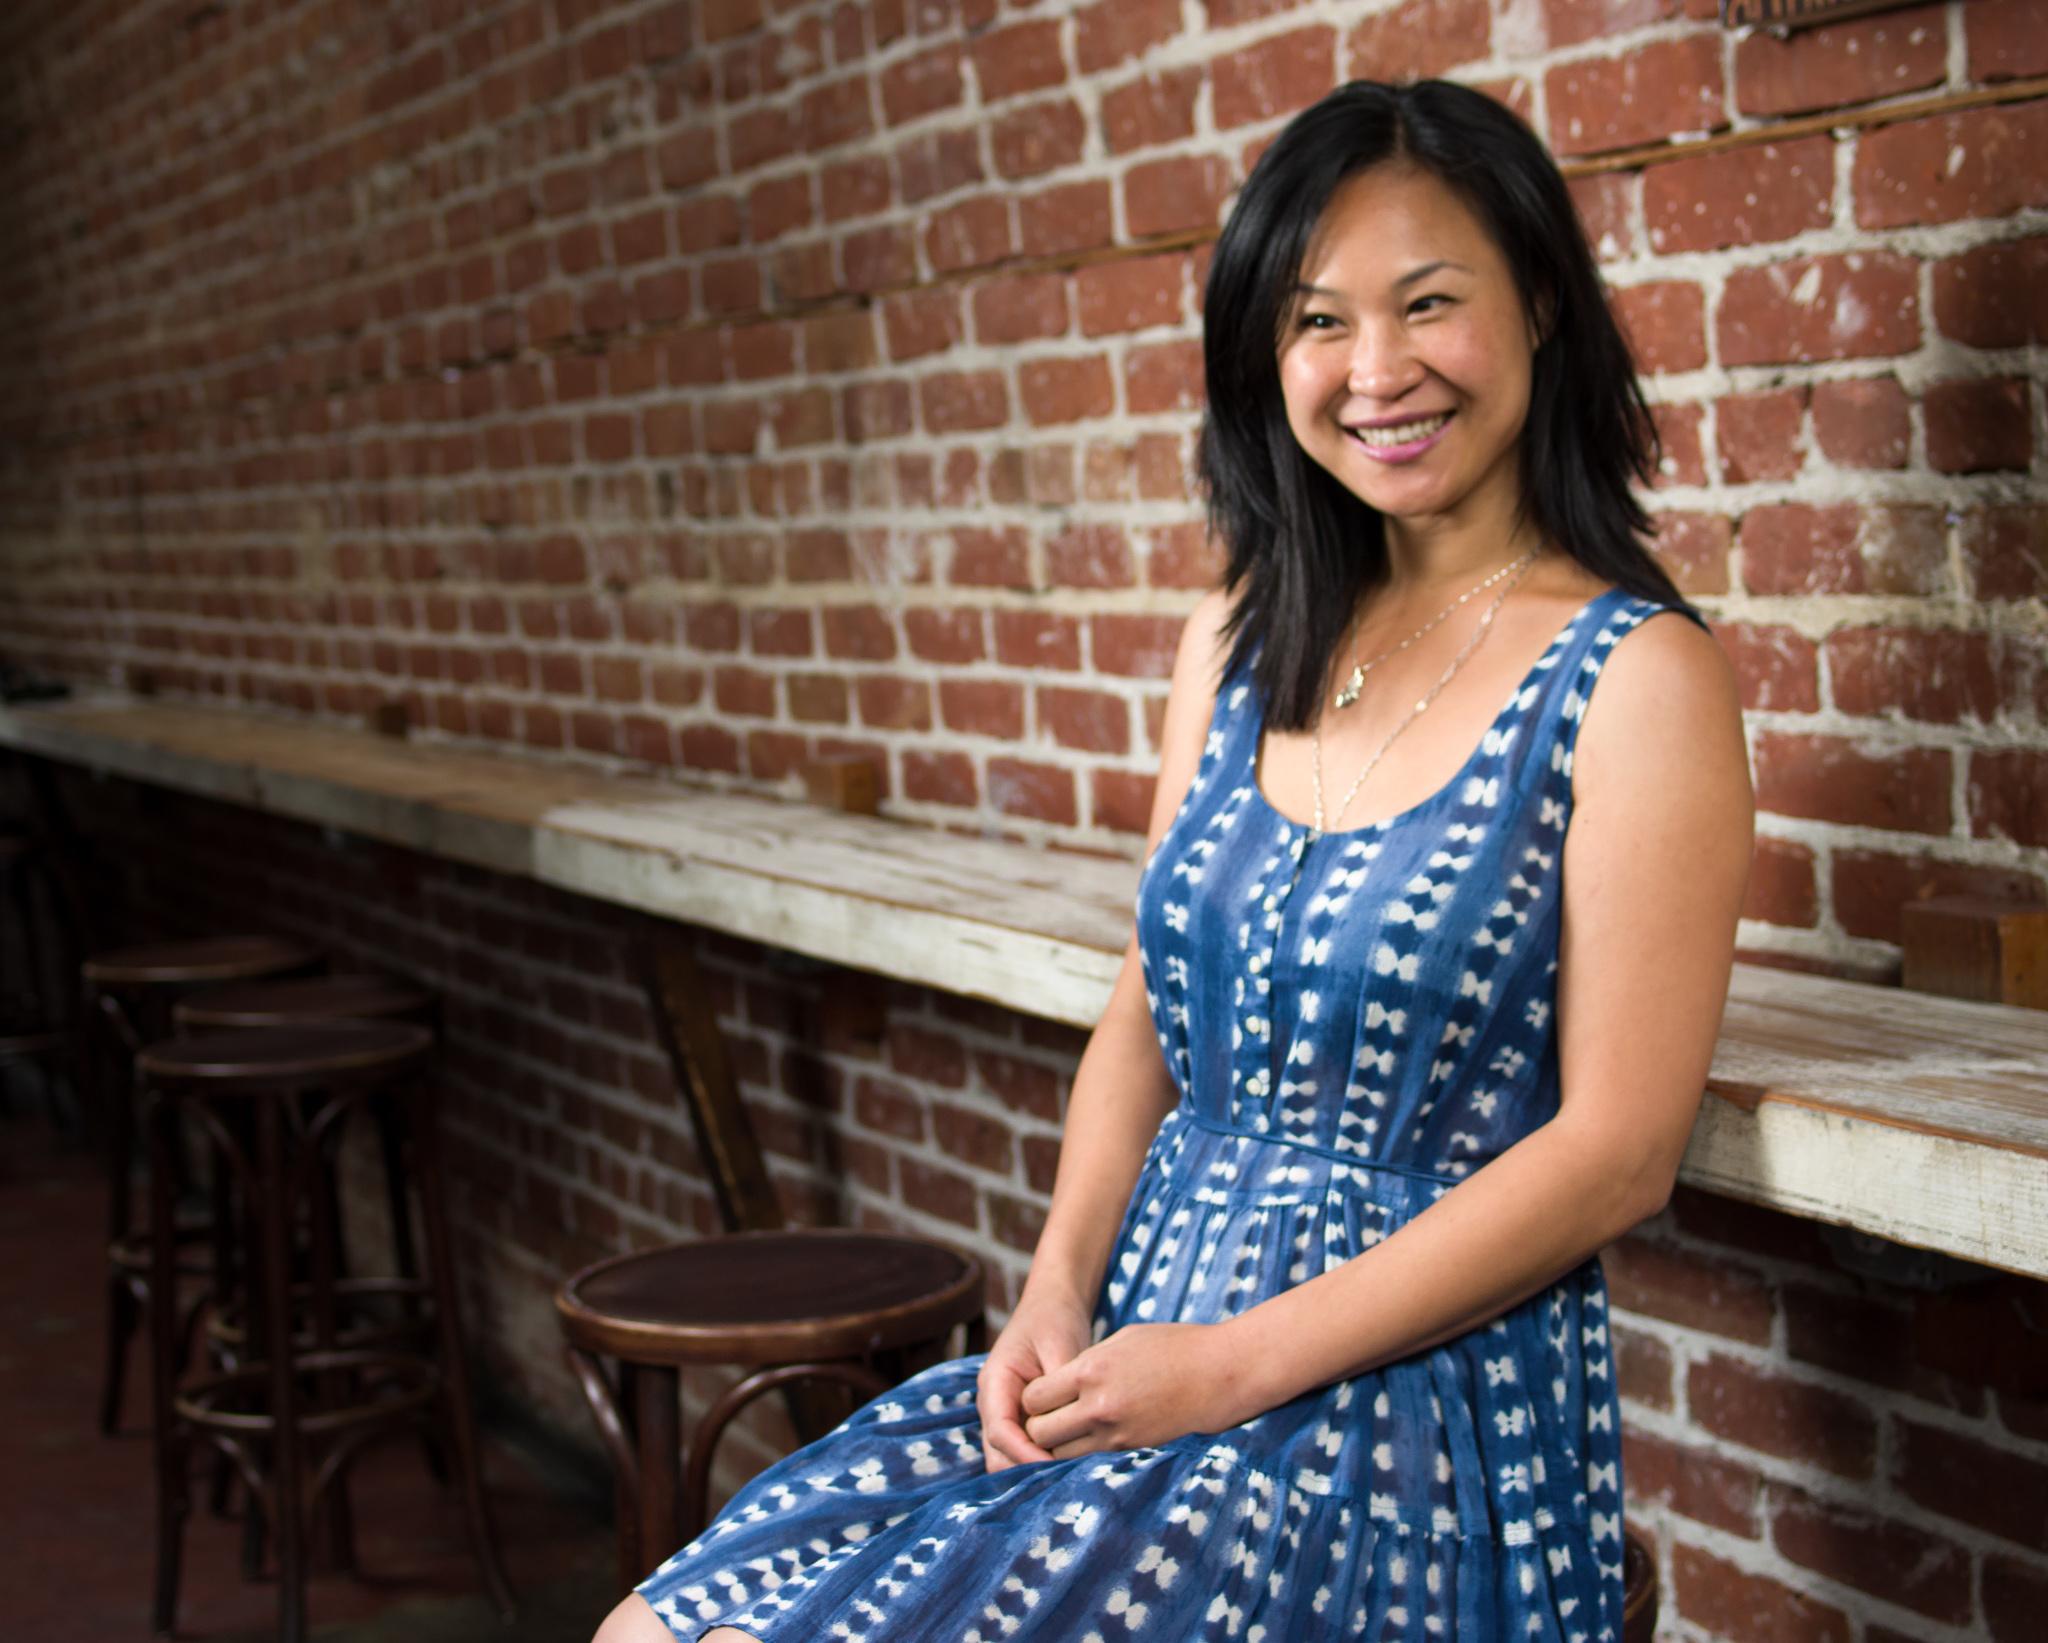 woman in blue dress smiling in front of brick wall